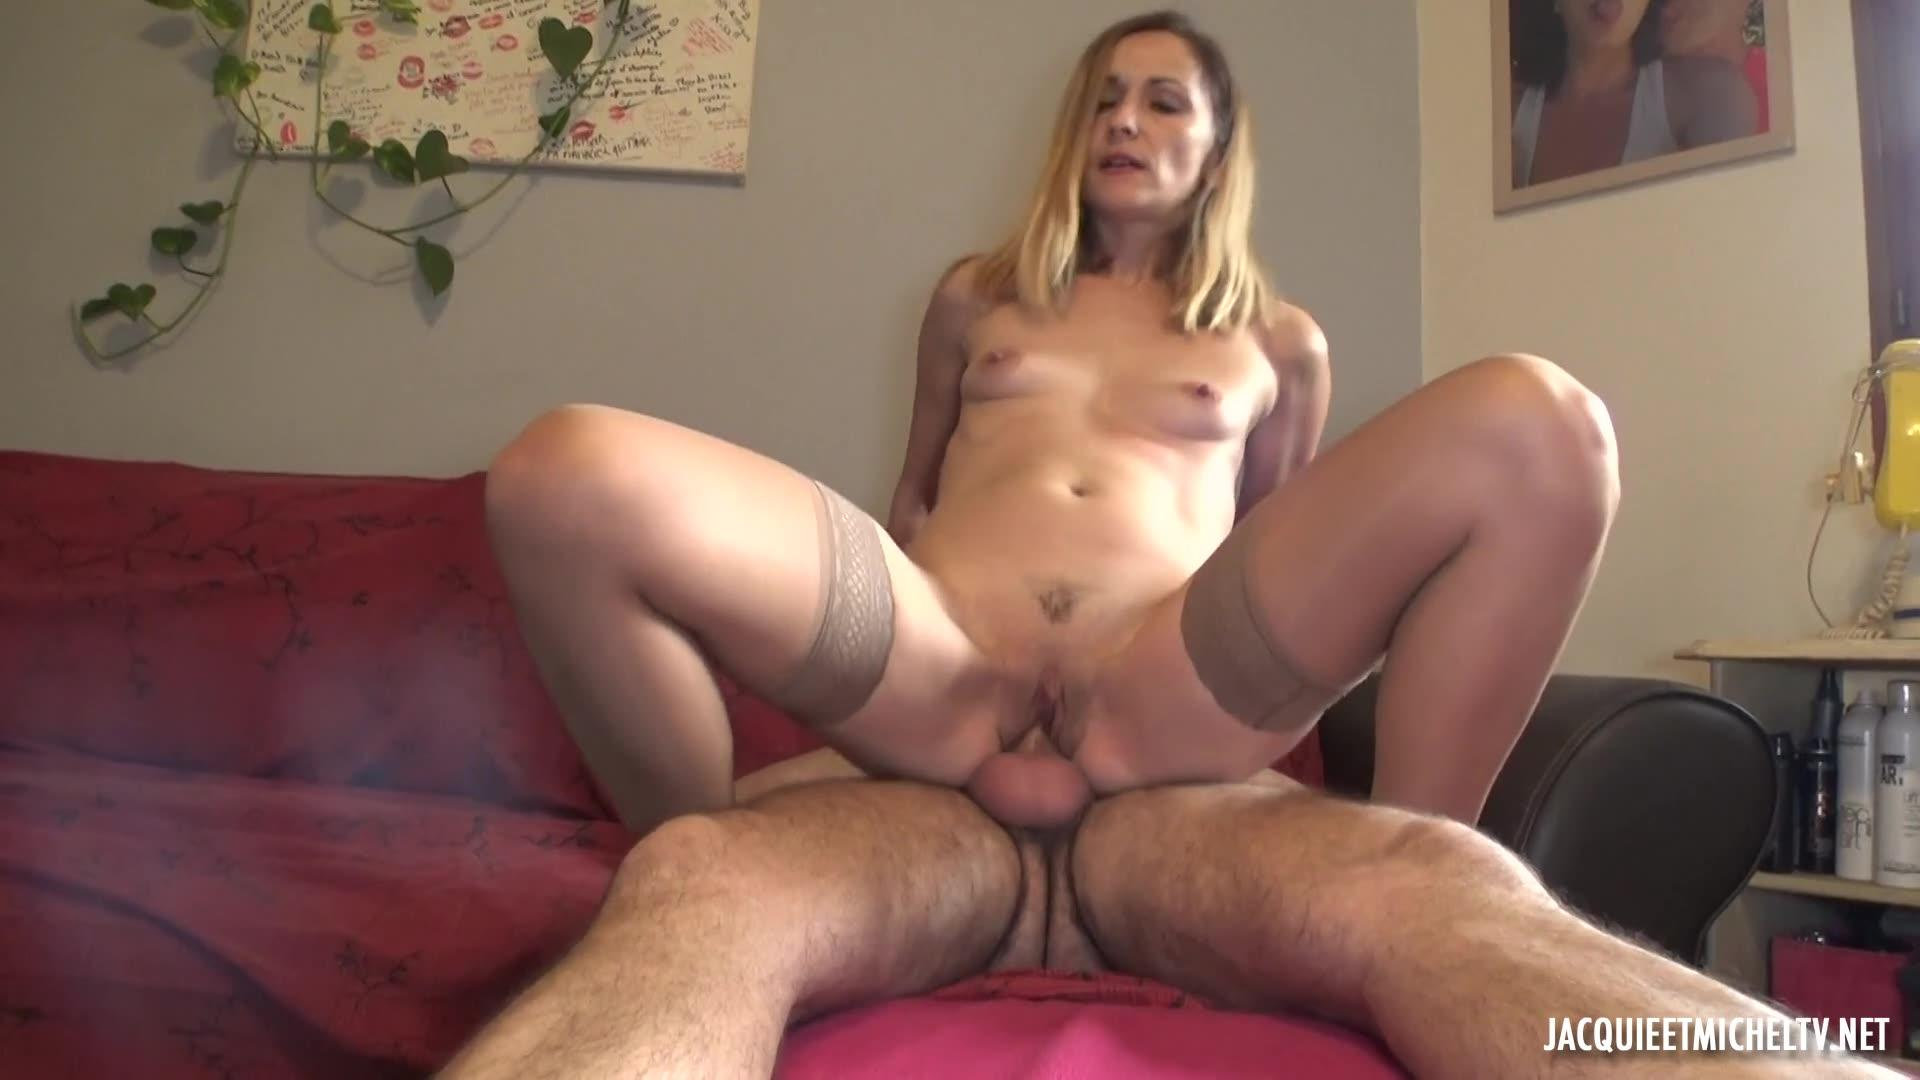 JacquieEtMichelTV 20 09 16 Alice Takes A Layer With Antho XXX 1080p MP4-XXX